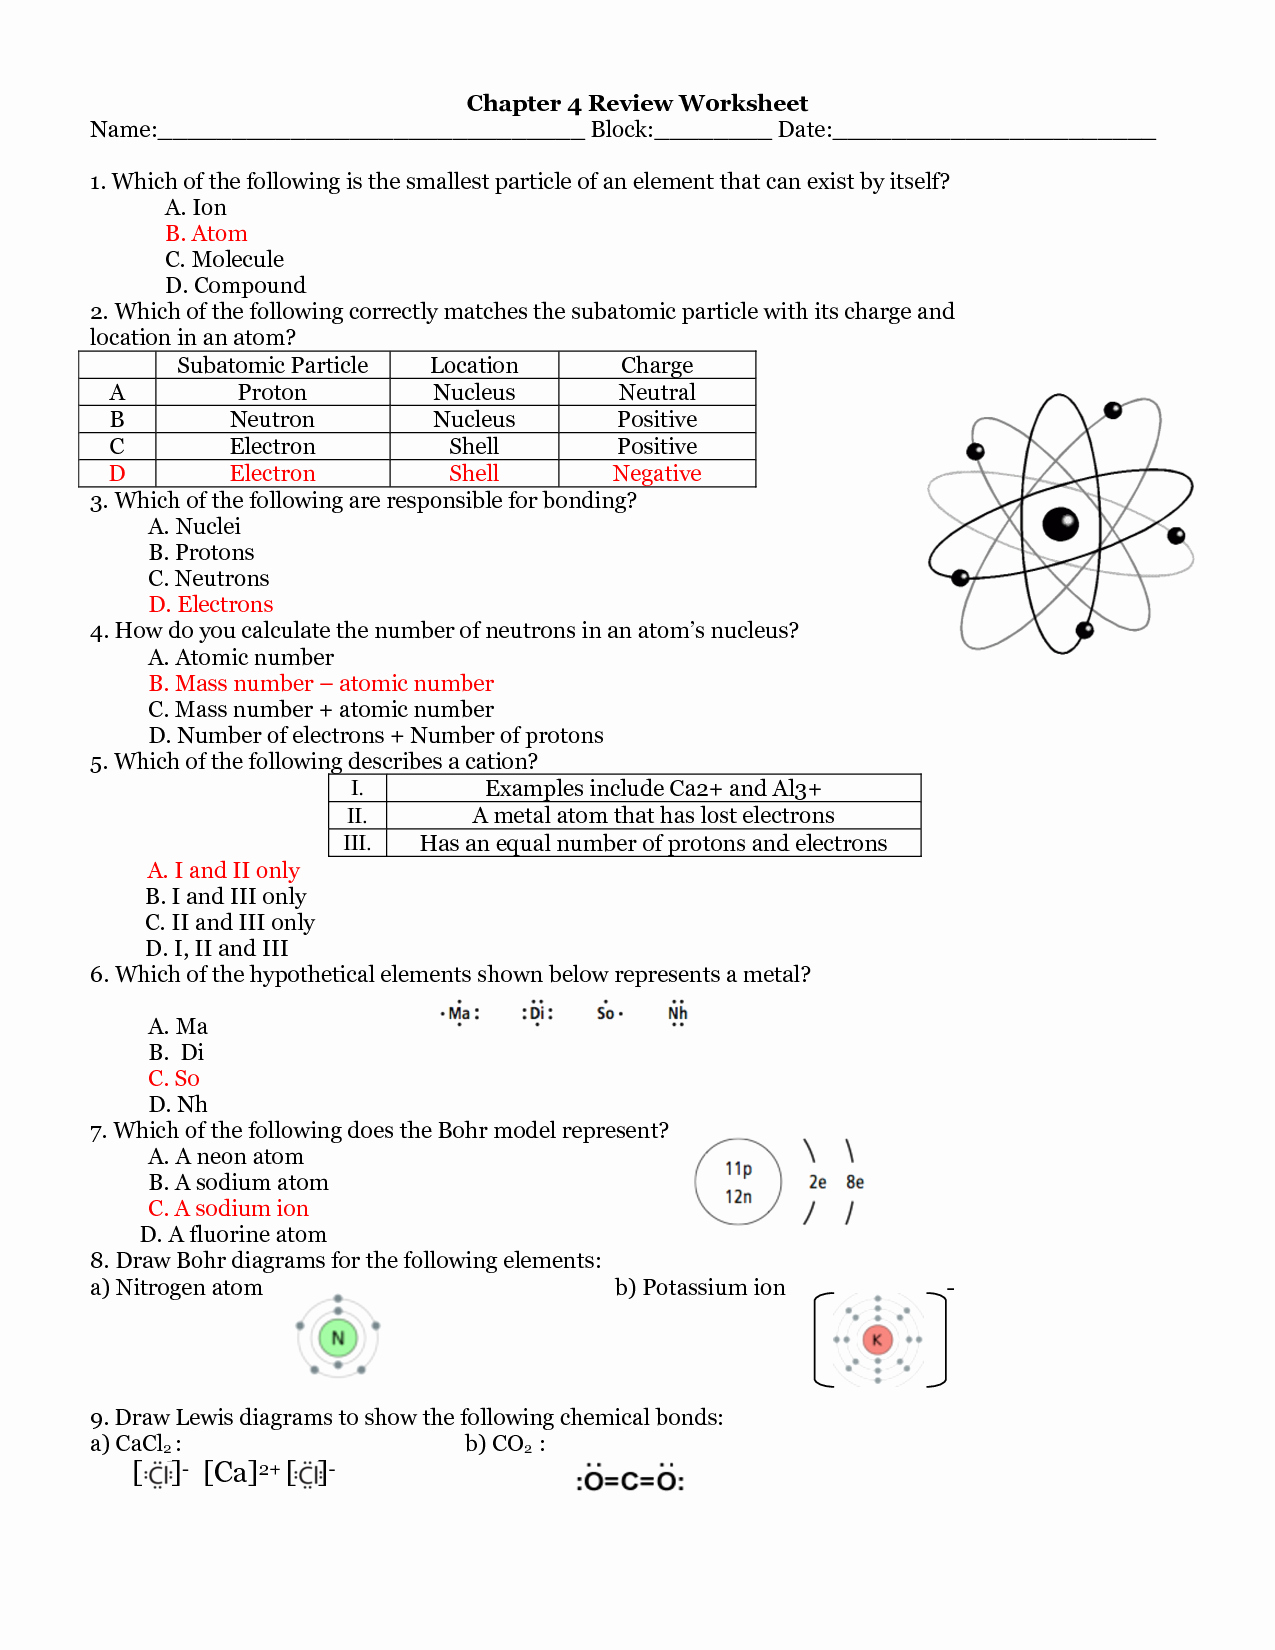 50 Atoms And Isotopes Worksheet